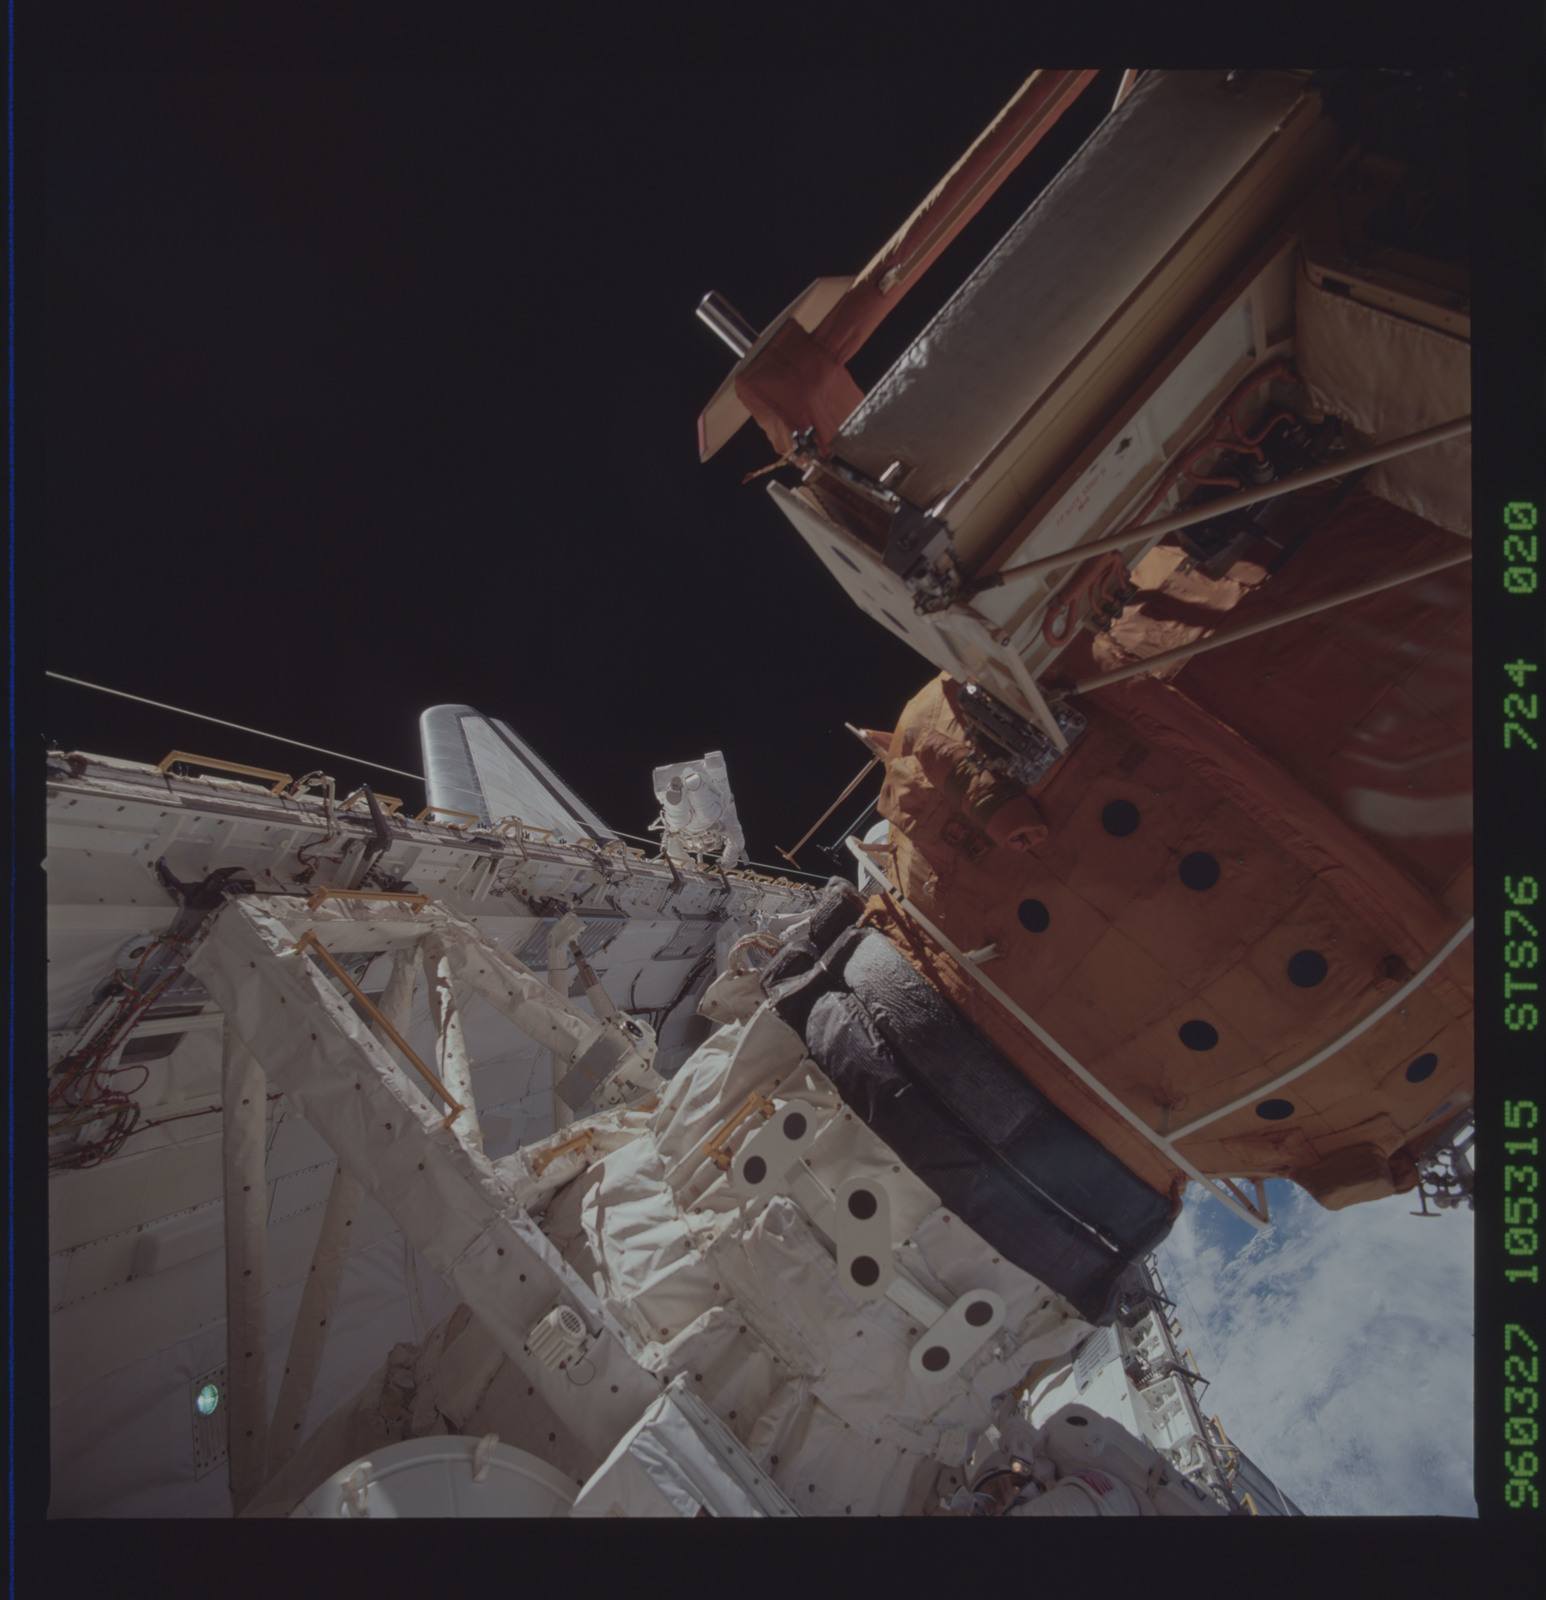 STS076-724-020 - STS-076 - Astronauts Linda Godwin and Michael ``Rich`` Clifford during EVA